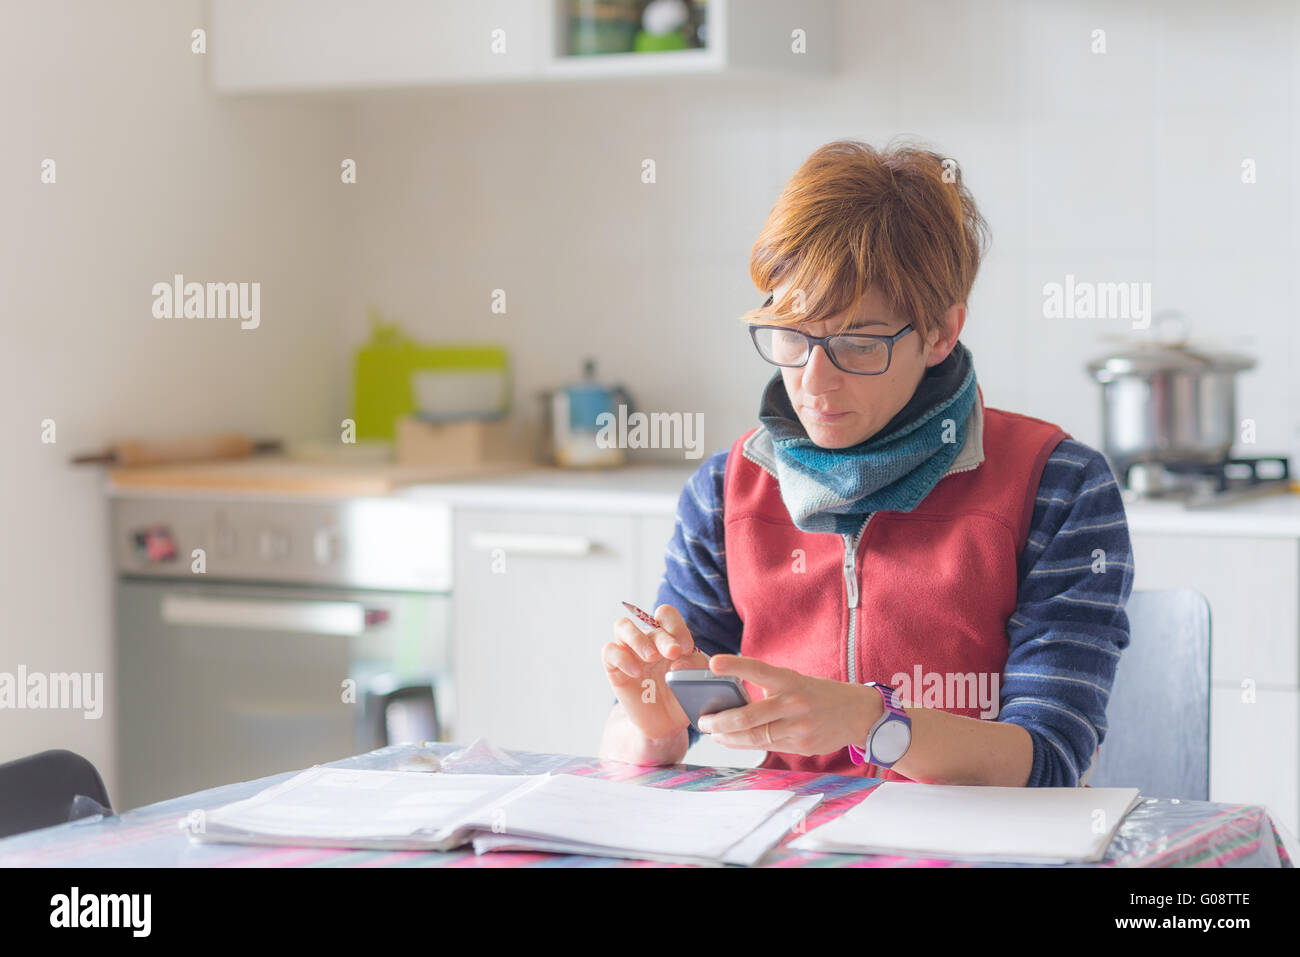 Woman with eyeglasses sitting at table, reading and handwriting paperwork and documents. Selective focus, home interiors. - Stock Image